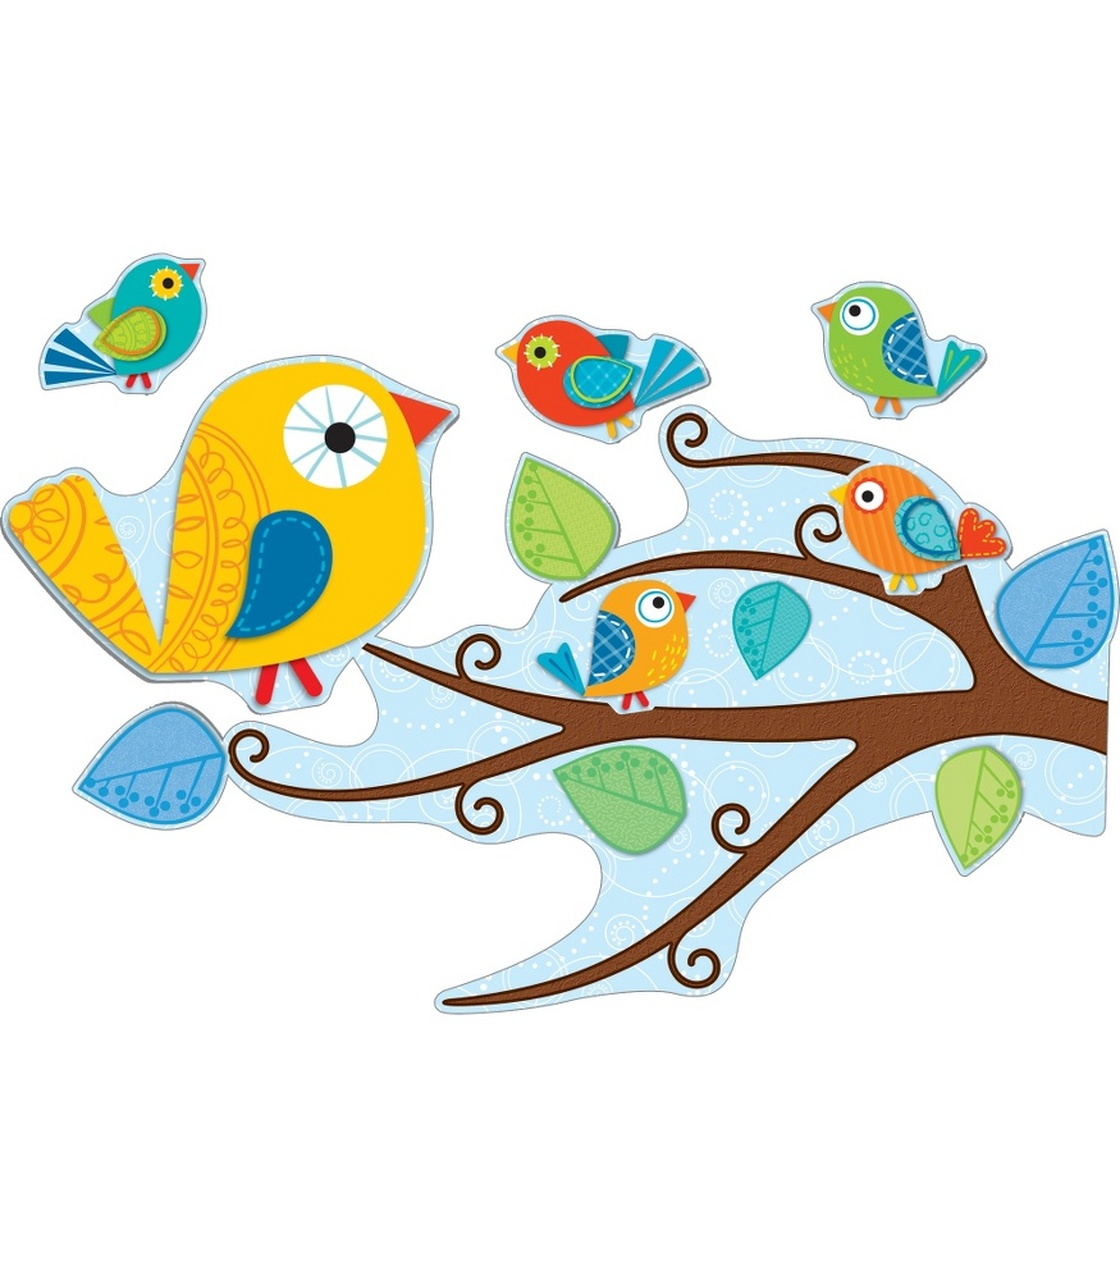 Boho birds free clipart picture freeuse library Boho Birds Bulletin Board Set picture freeuse library